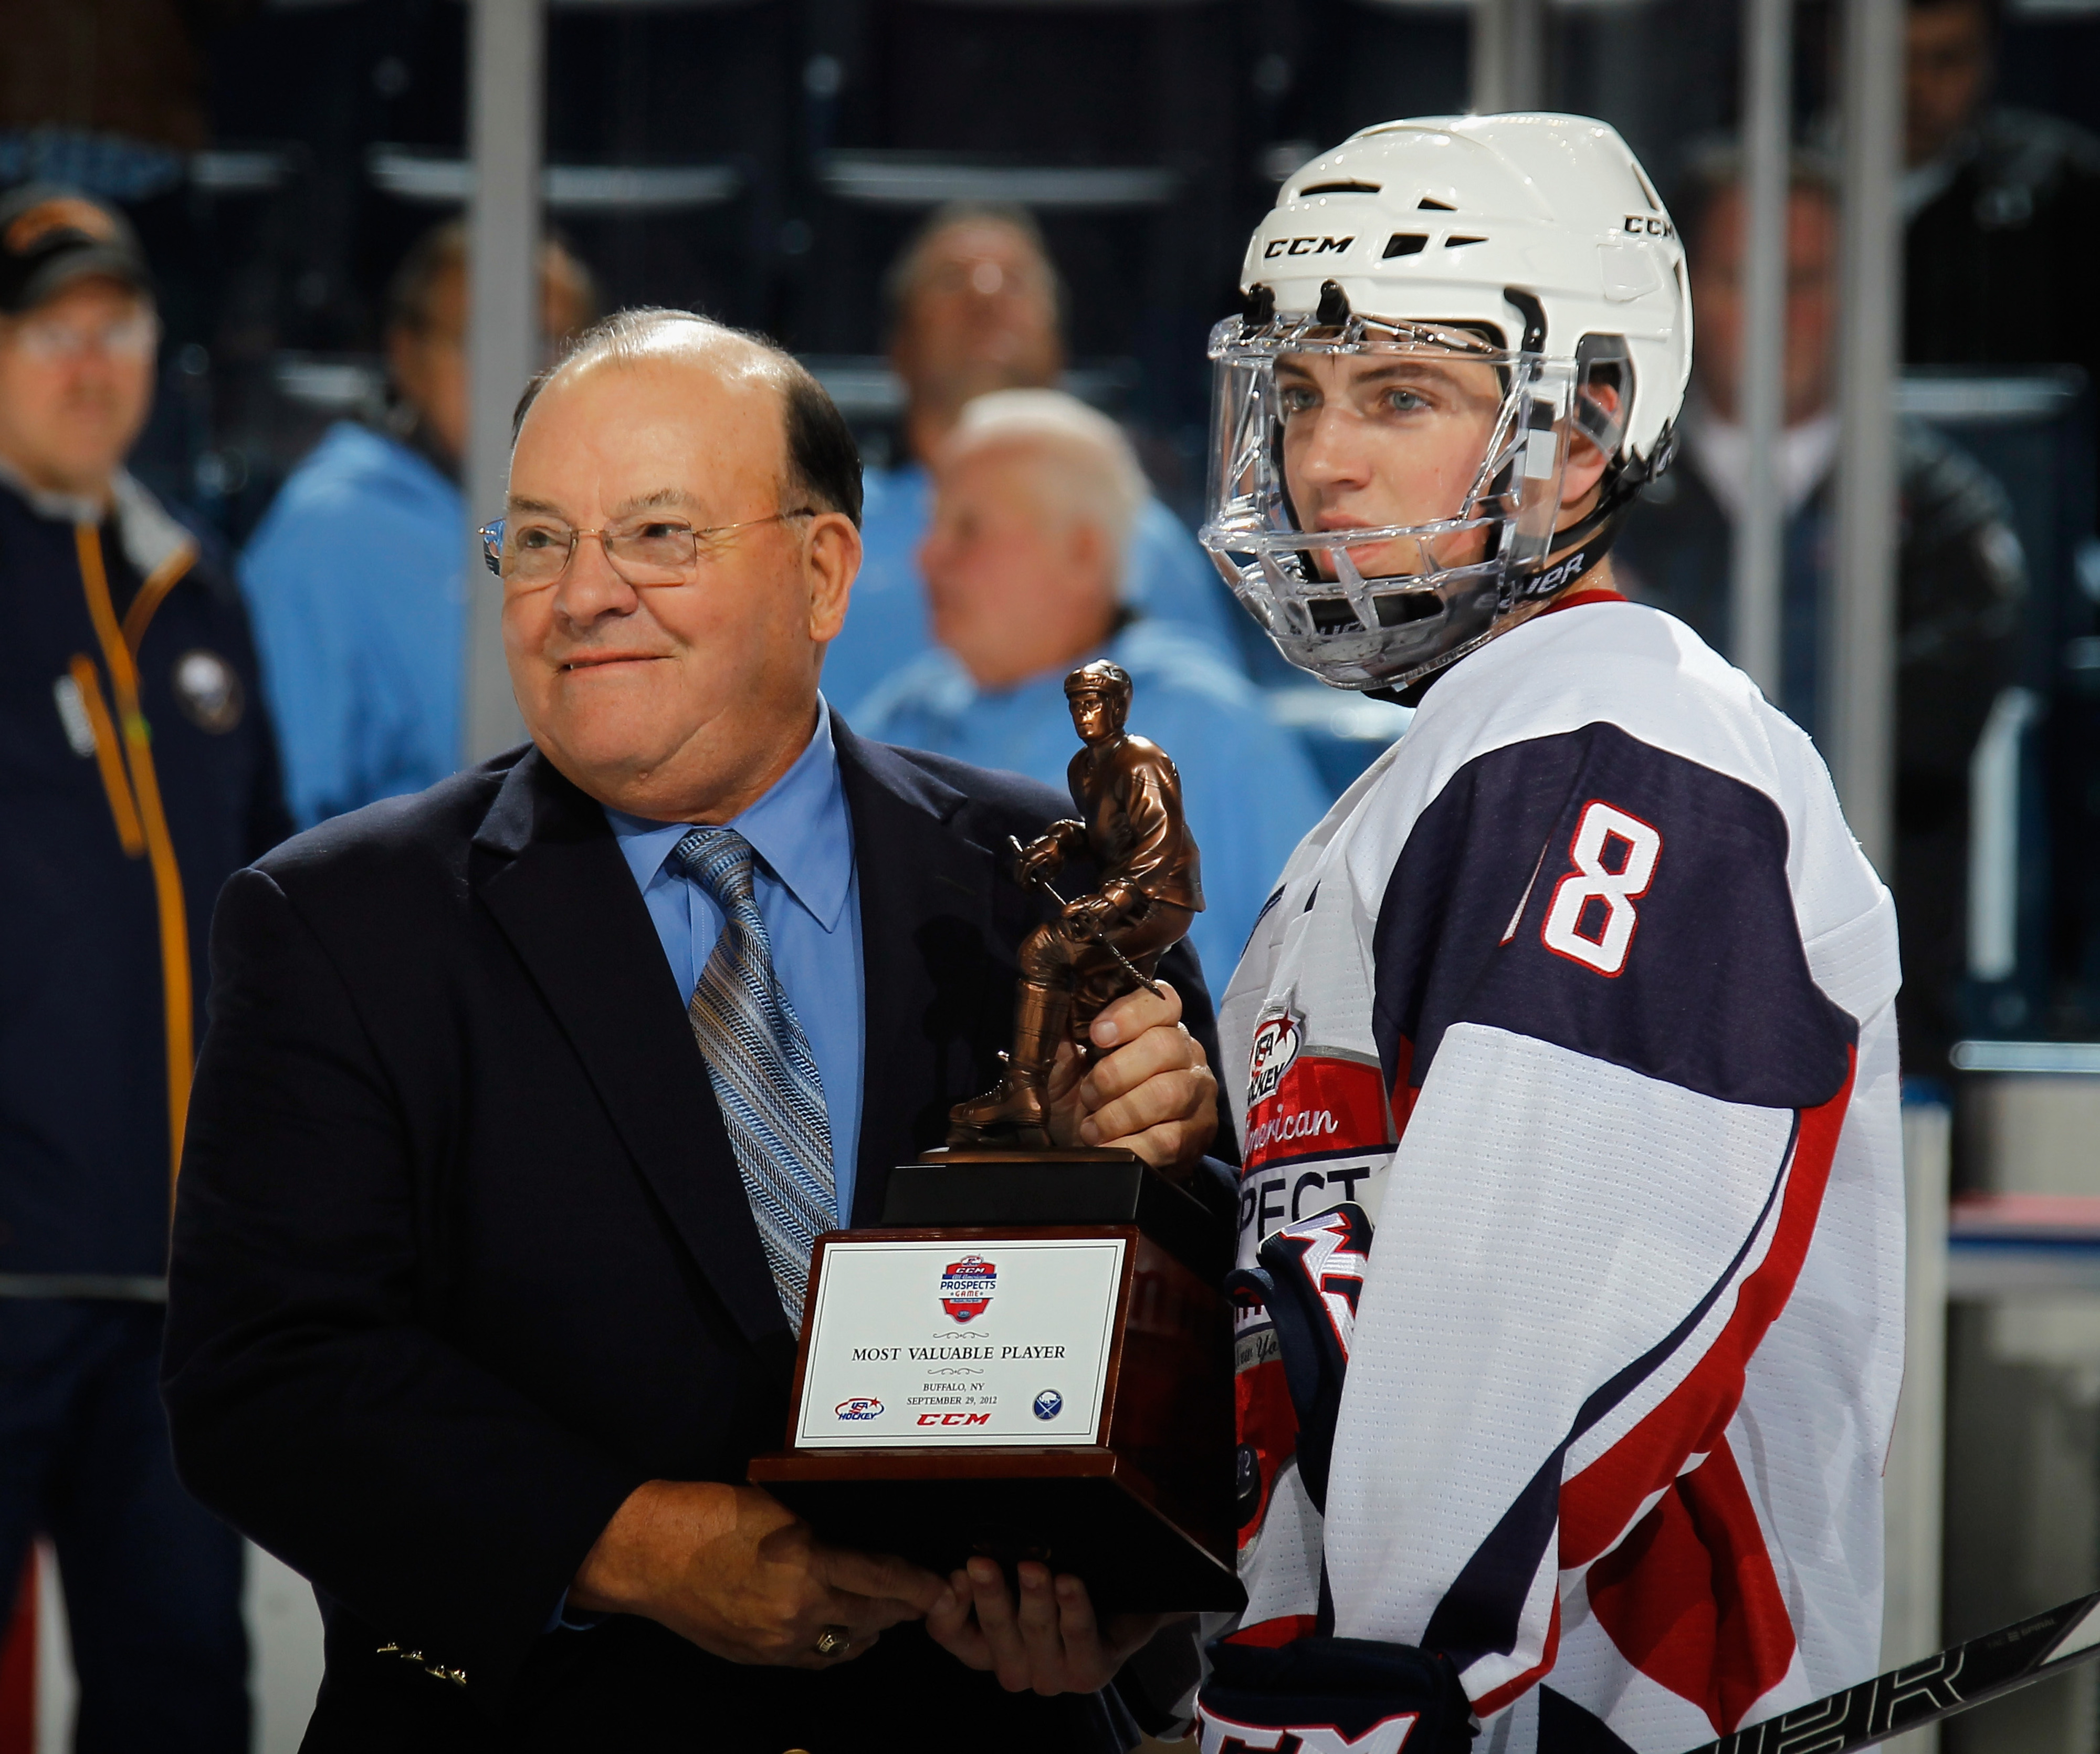 Boston College's Ryan Fitzgerald was among the first round of cuts for the US World Junior team